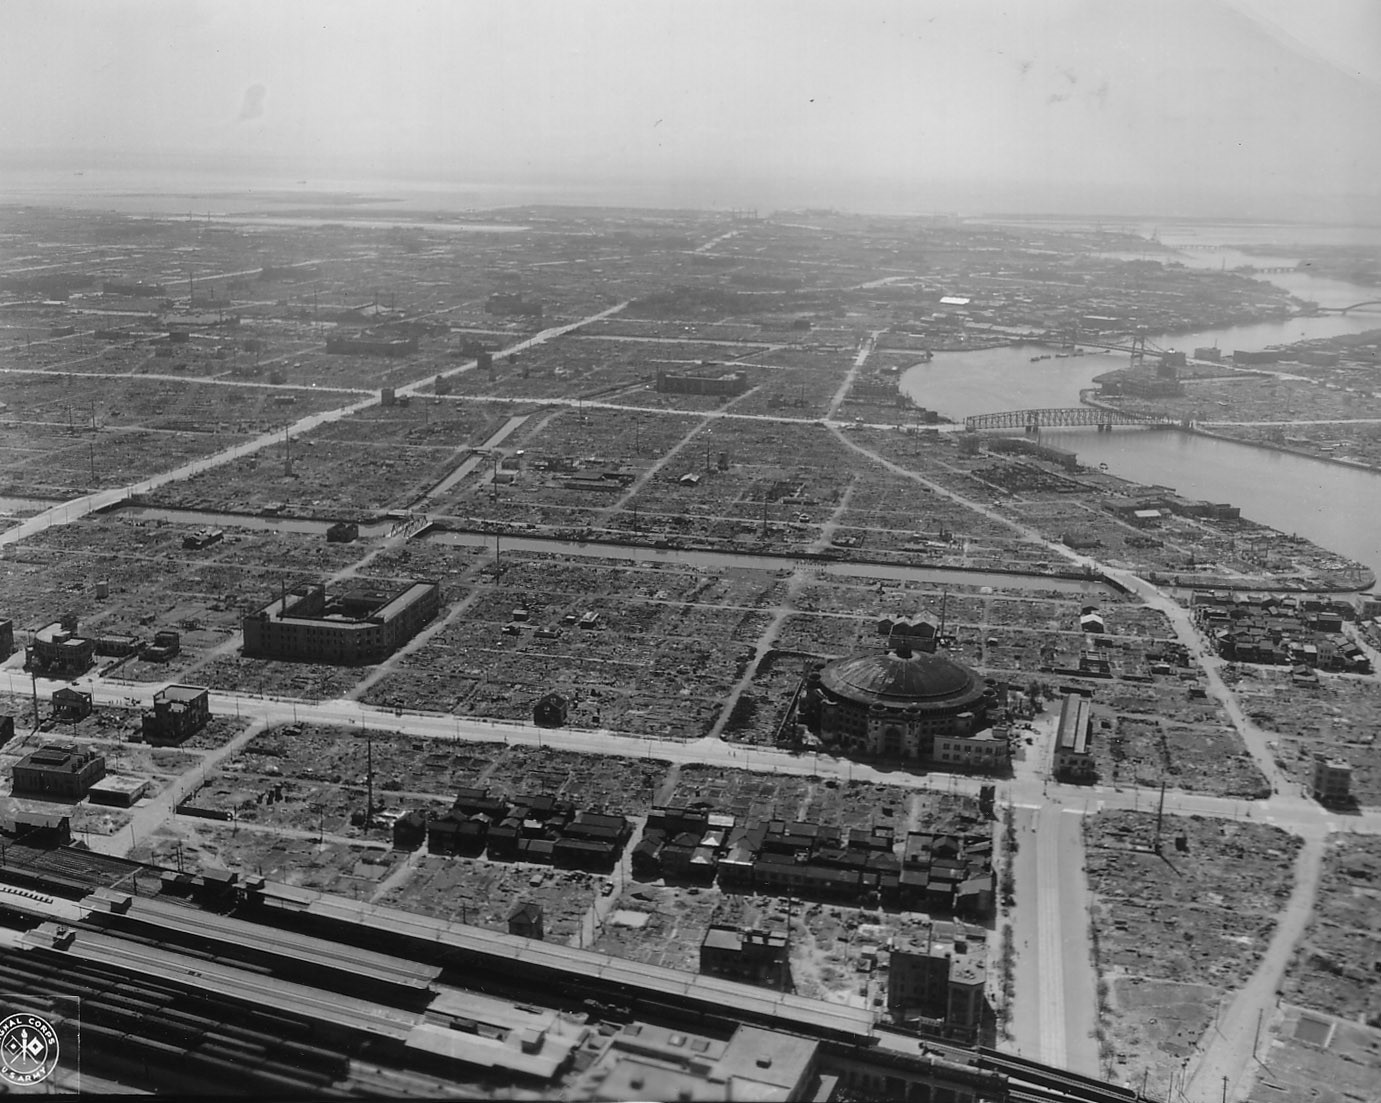 Entire city blocks in Tokyo were wiped out by American bombing campaigns during World War II.